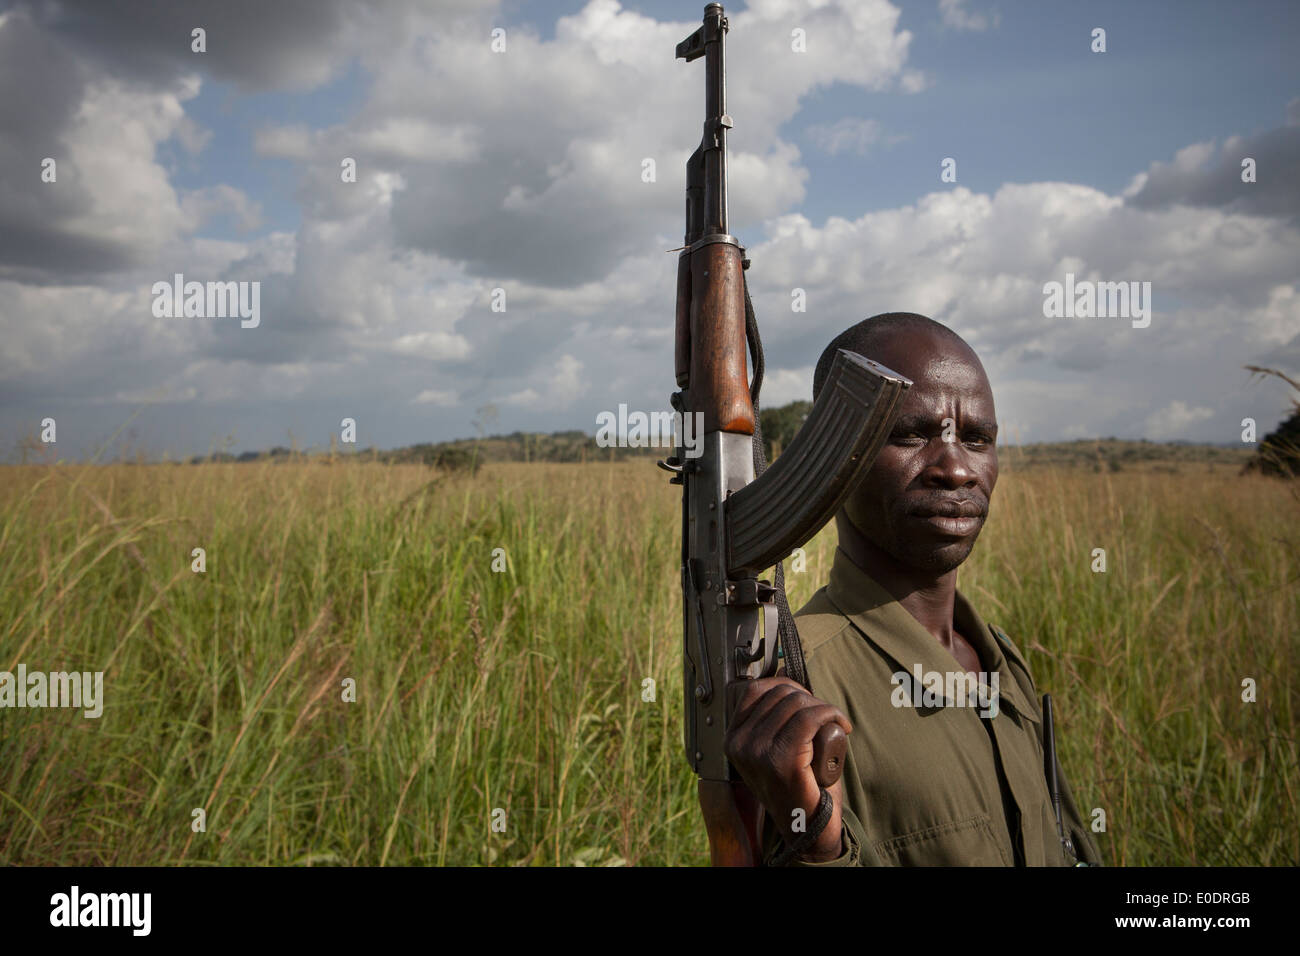 A soldier stands near the South Sudan - Uganda border, Uganda East Africa. - Stock Image